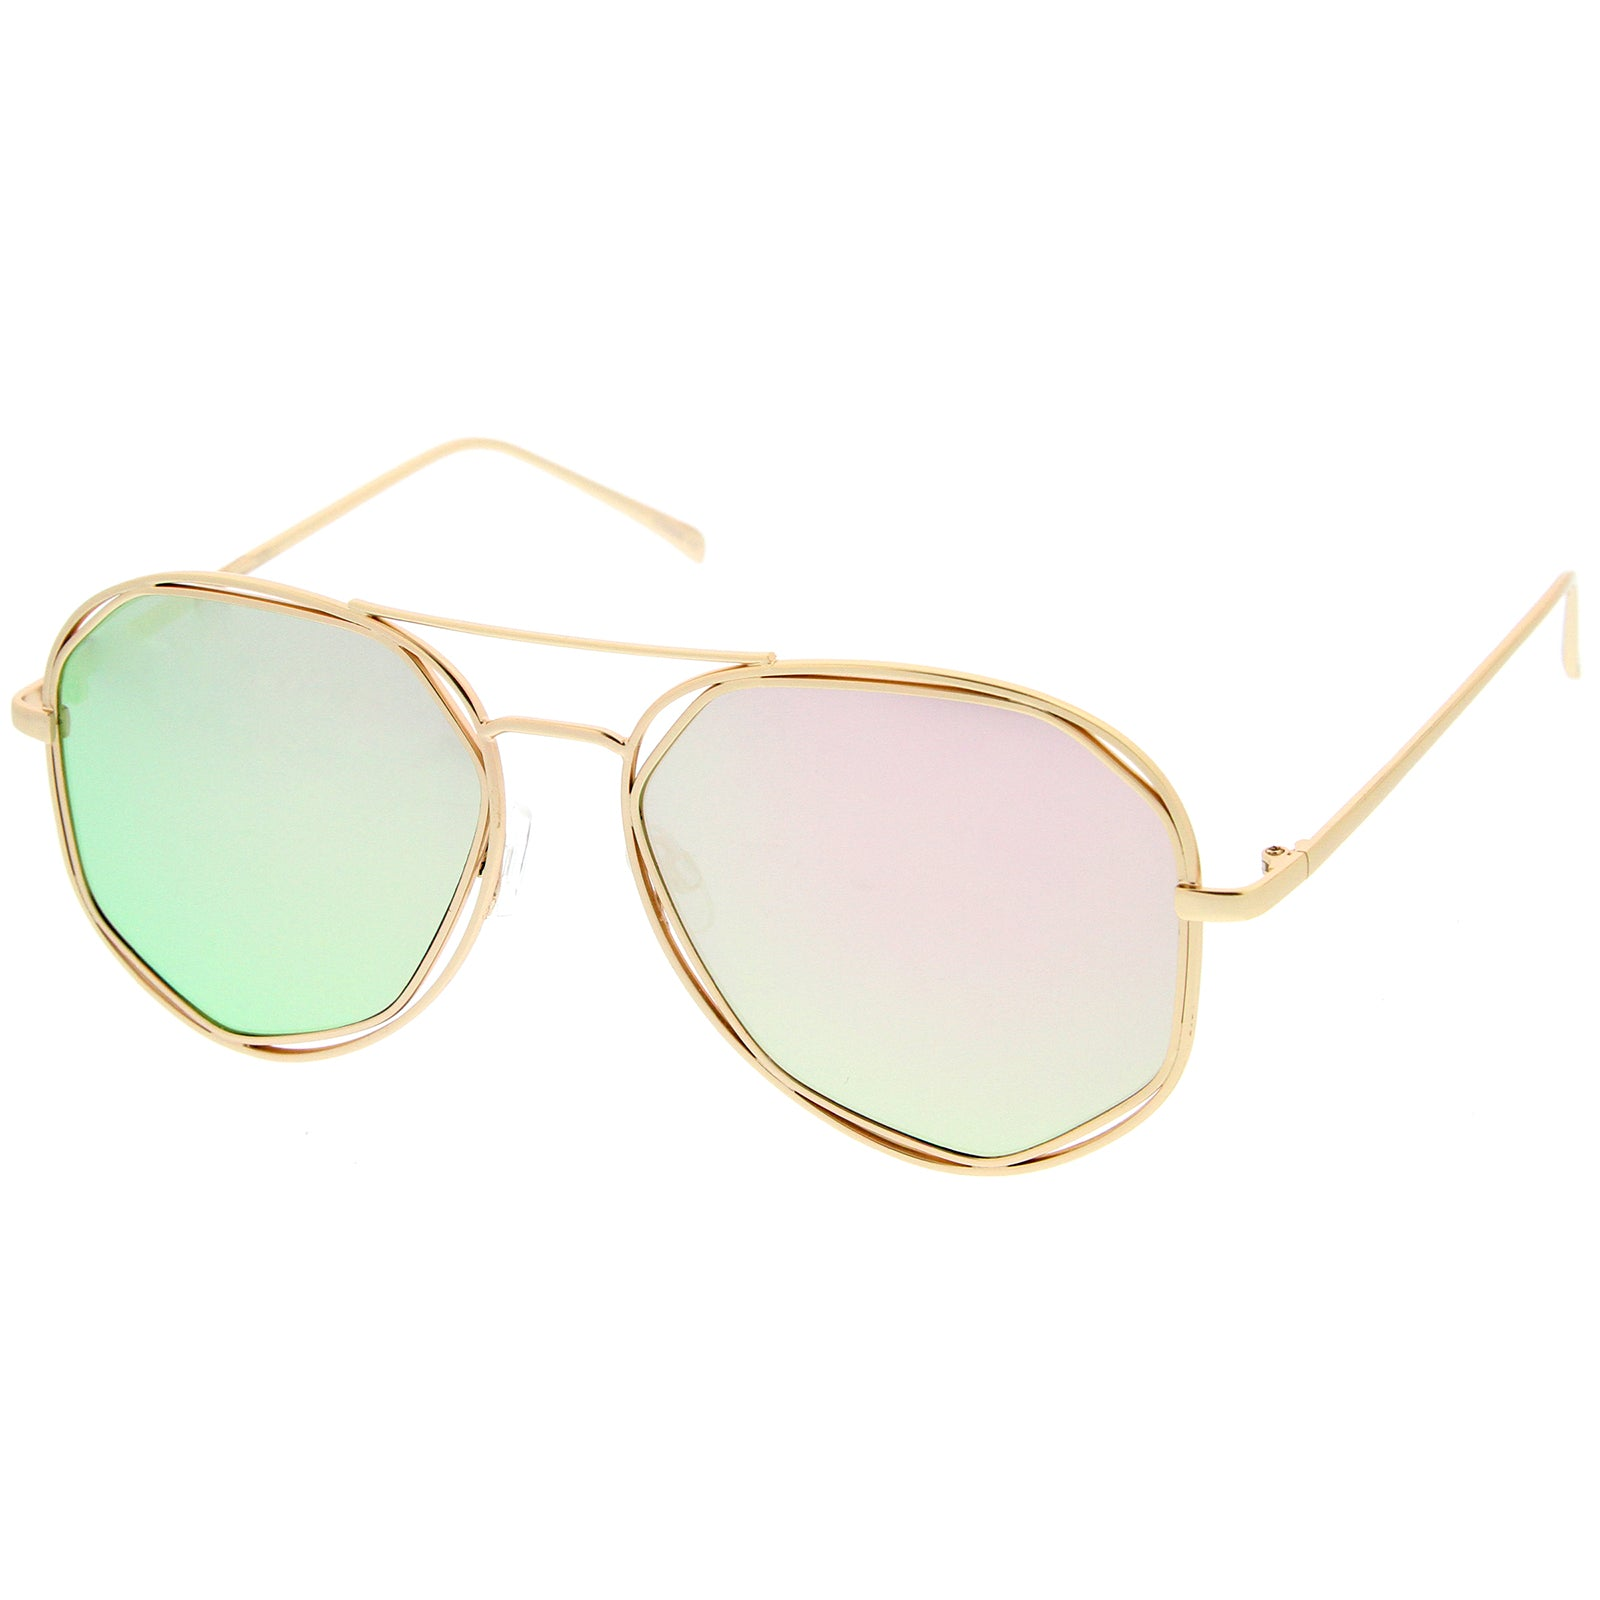 Geometric Hexagonal Metal Frame Colored Mirror Flat Lens Aviator Sunglasses 60mm - sunglass.la - 2